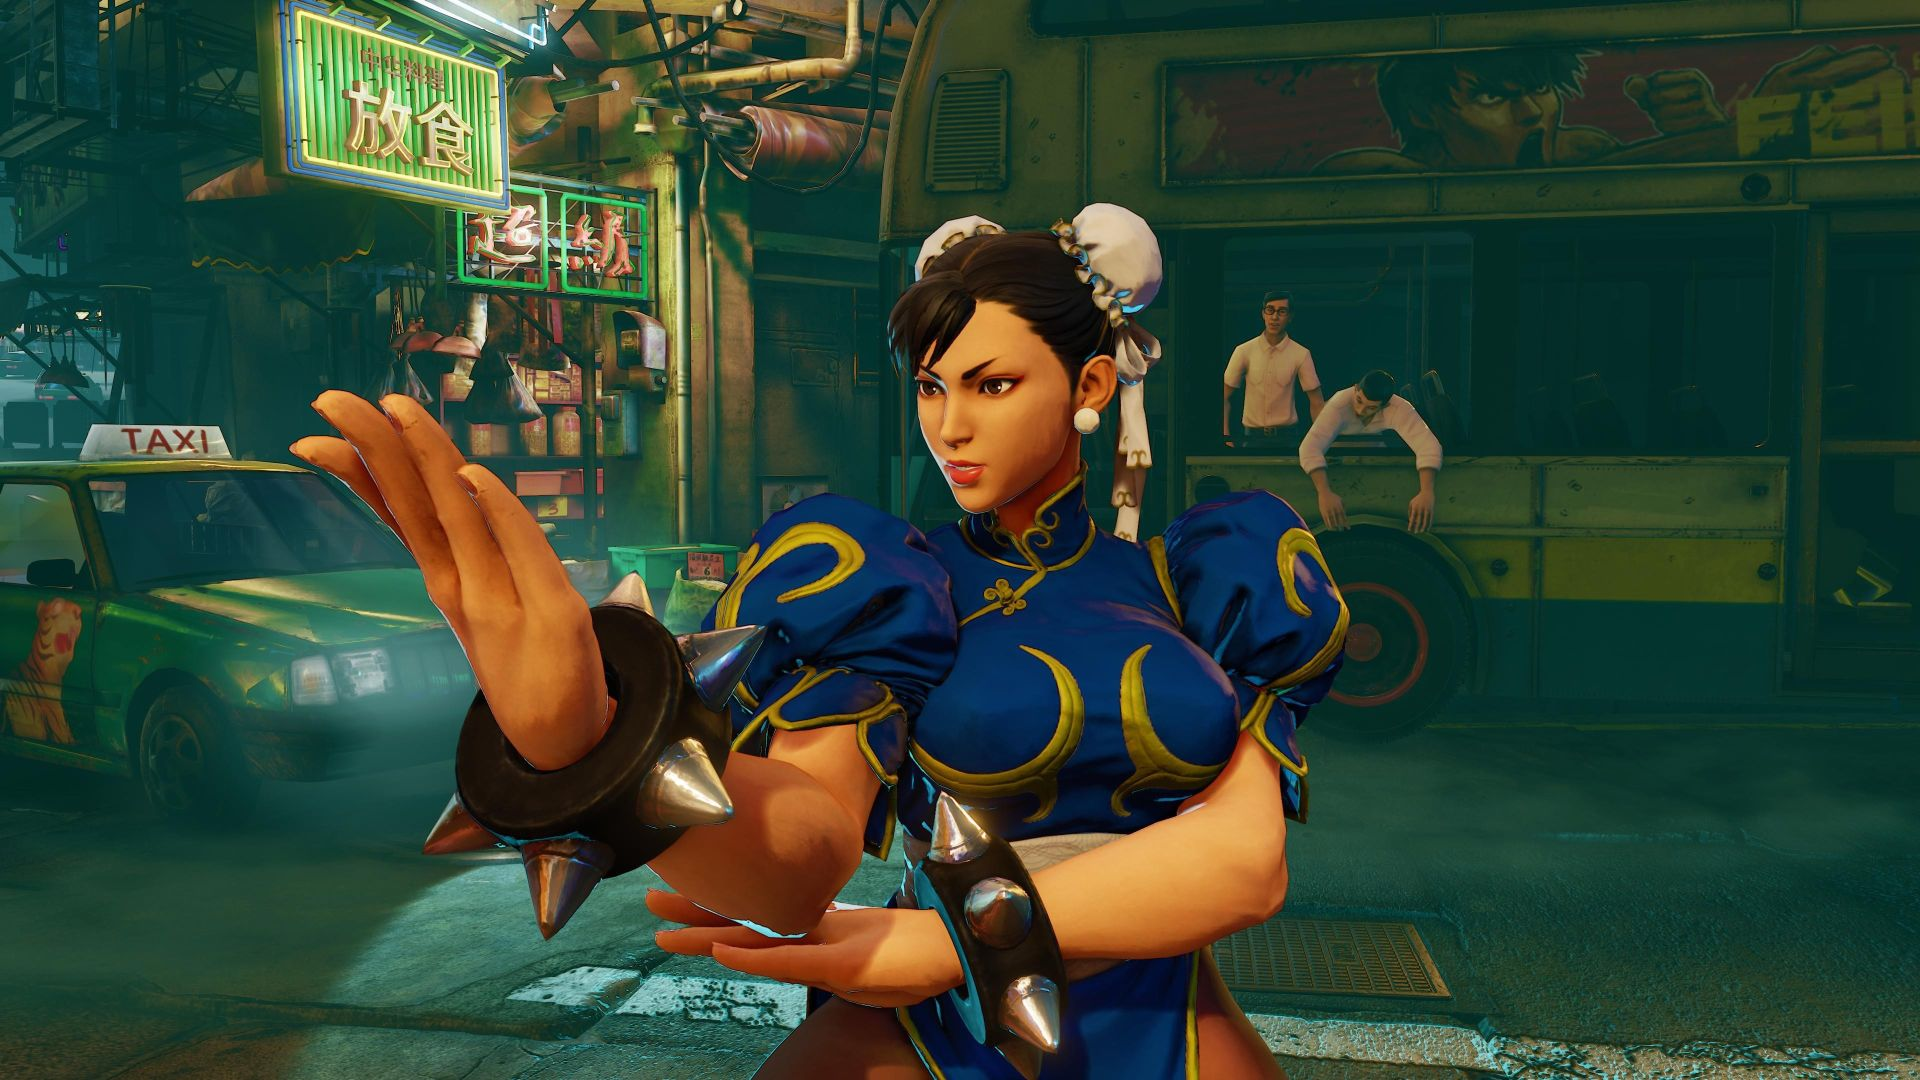 Heres Some Street Fighter Chun Li Art Drawn By One Punch Mans Tsume Chunli Man Is A Phenomenal Anime And Part Of What Makes It Great The Artwork Well Now Illustrator Manga Series Yusuke Murata Has Decided